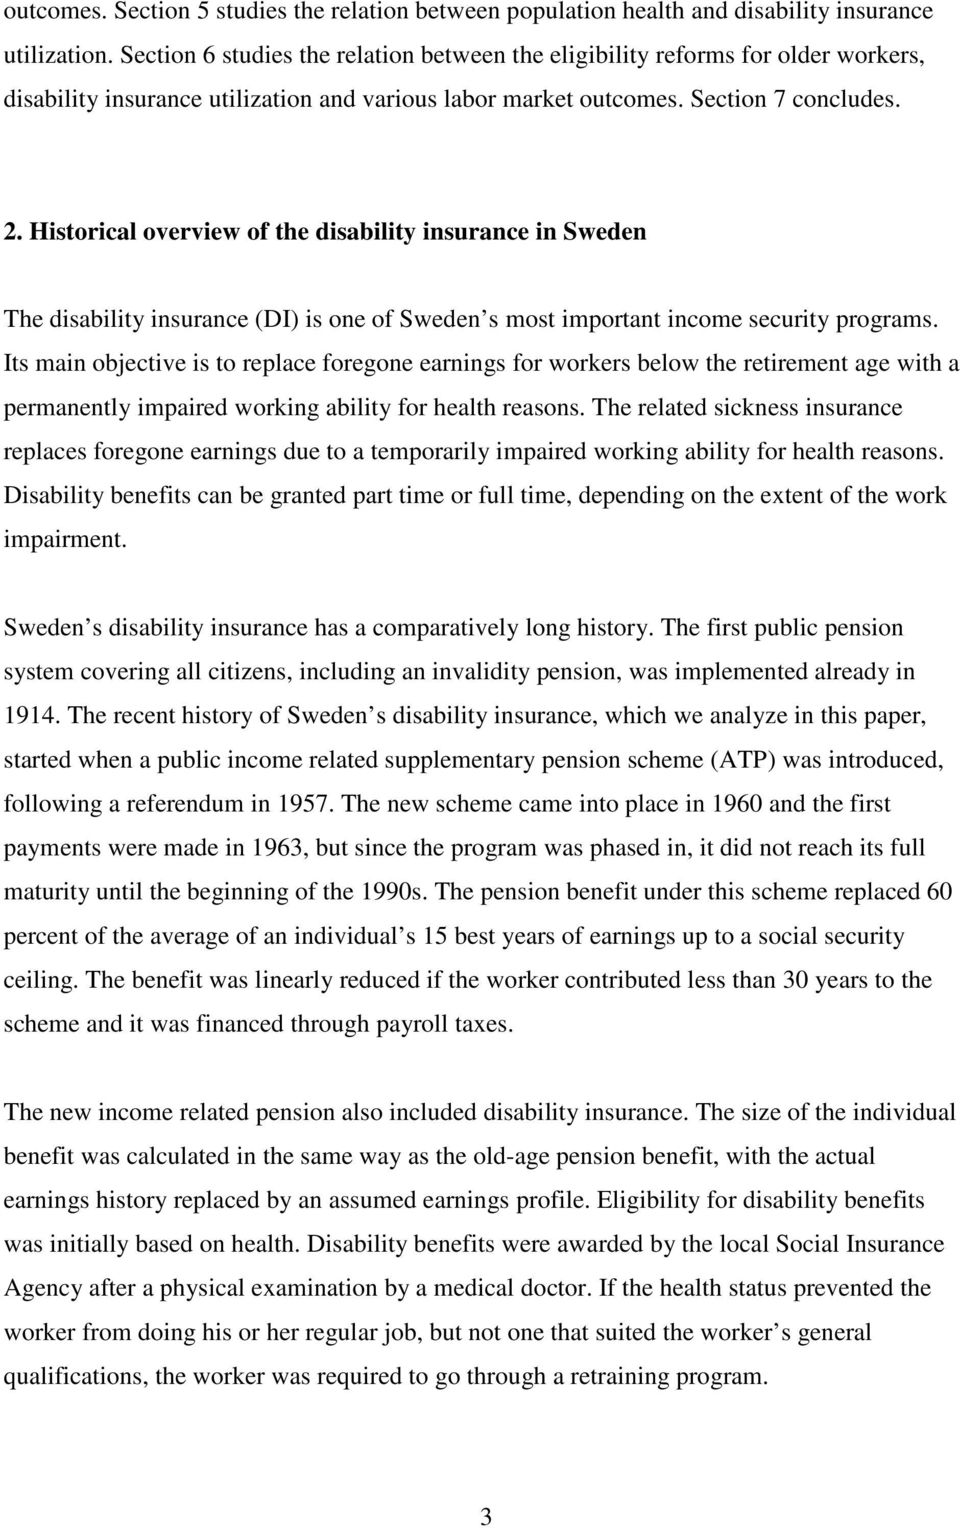 Historical overview of the disability insurance in Sweden The disability insurance (DI) is one of Sweden s most important income security programs.